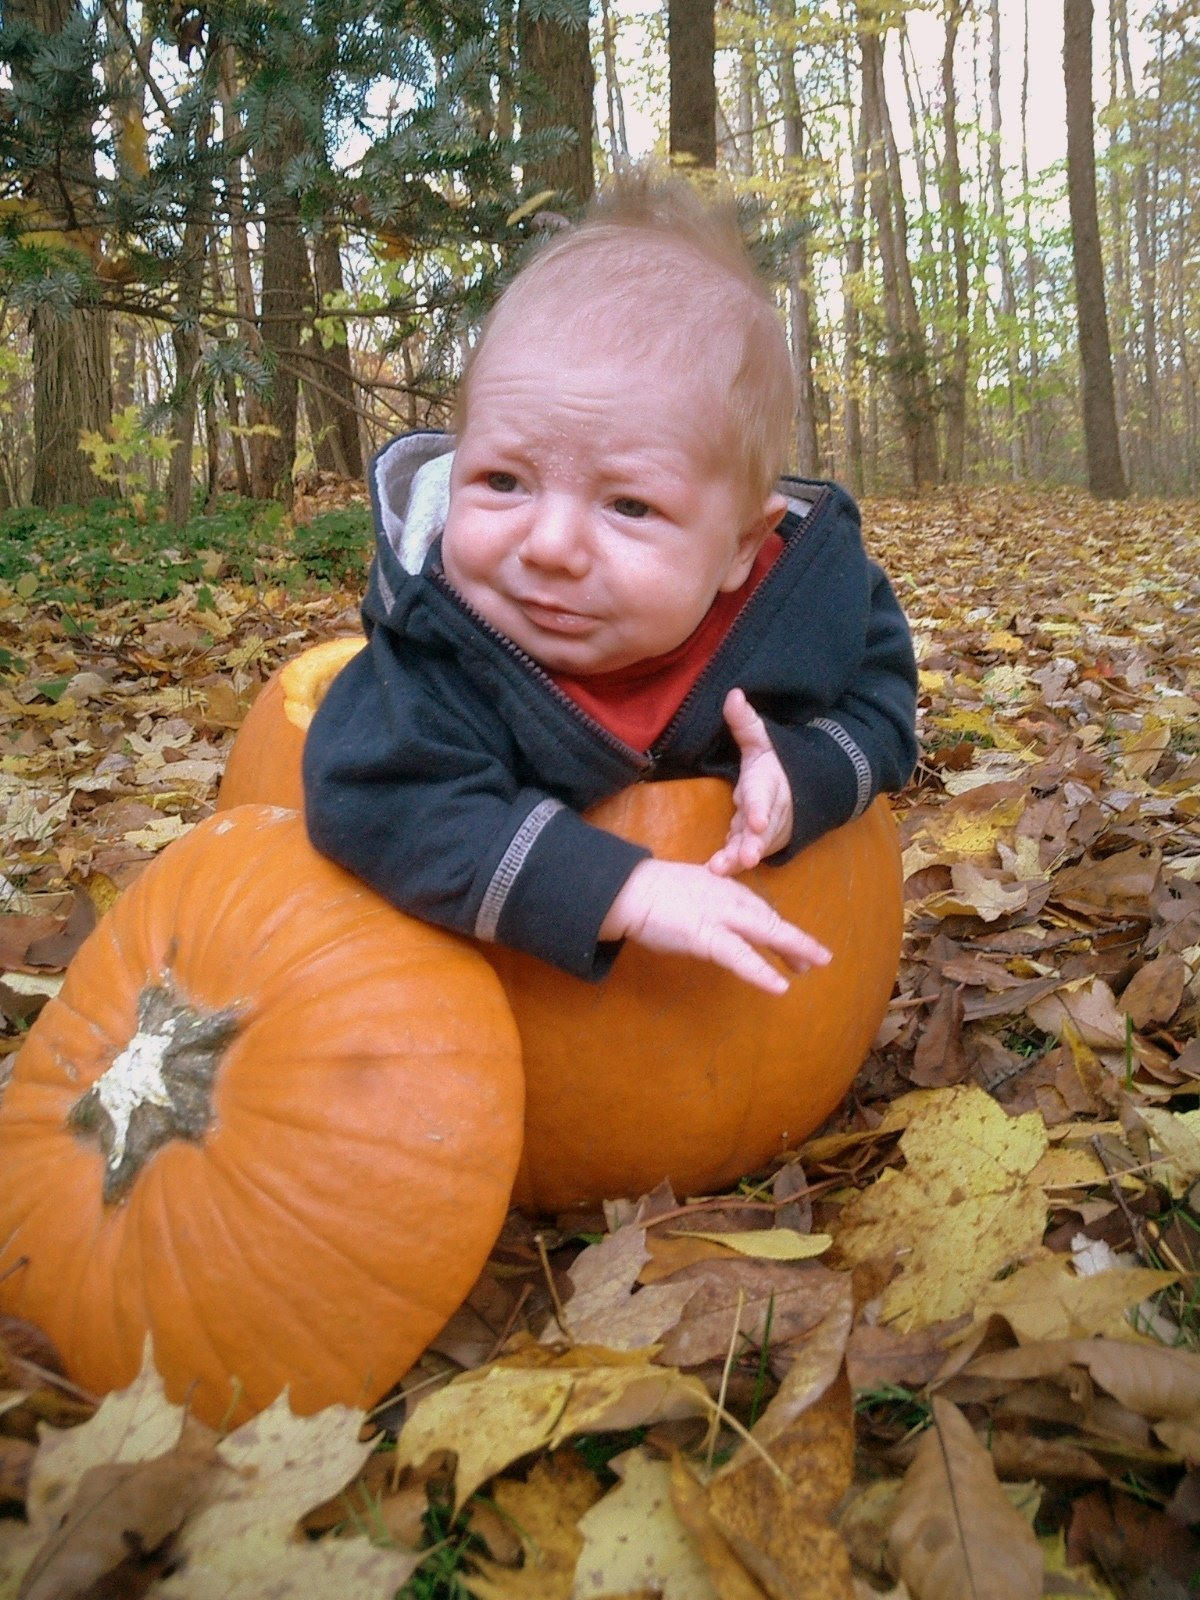 10 Great Fall Picture Ideas For Babies kids in pumpkins fall photo idea celebrate every day with me 1 2020